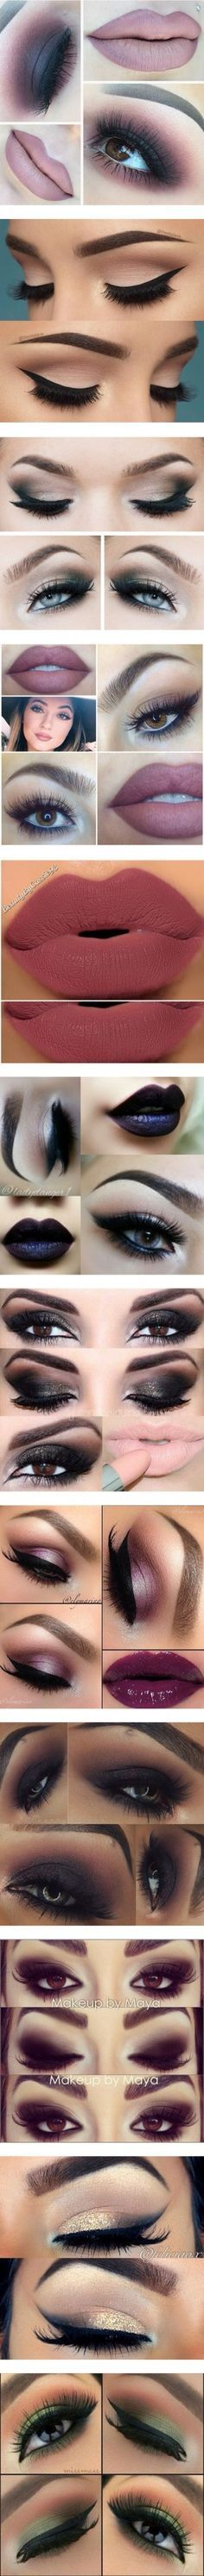 Makeup Part 2 by belabmilagres on Polyvore featuring beauty products, makeup, lips, beauty, eyes, eye makeup, eyeliner, make, lumiere makeup and lumiere cosmetics